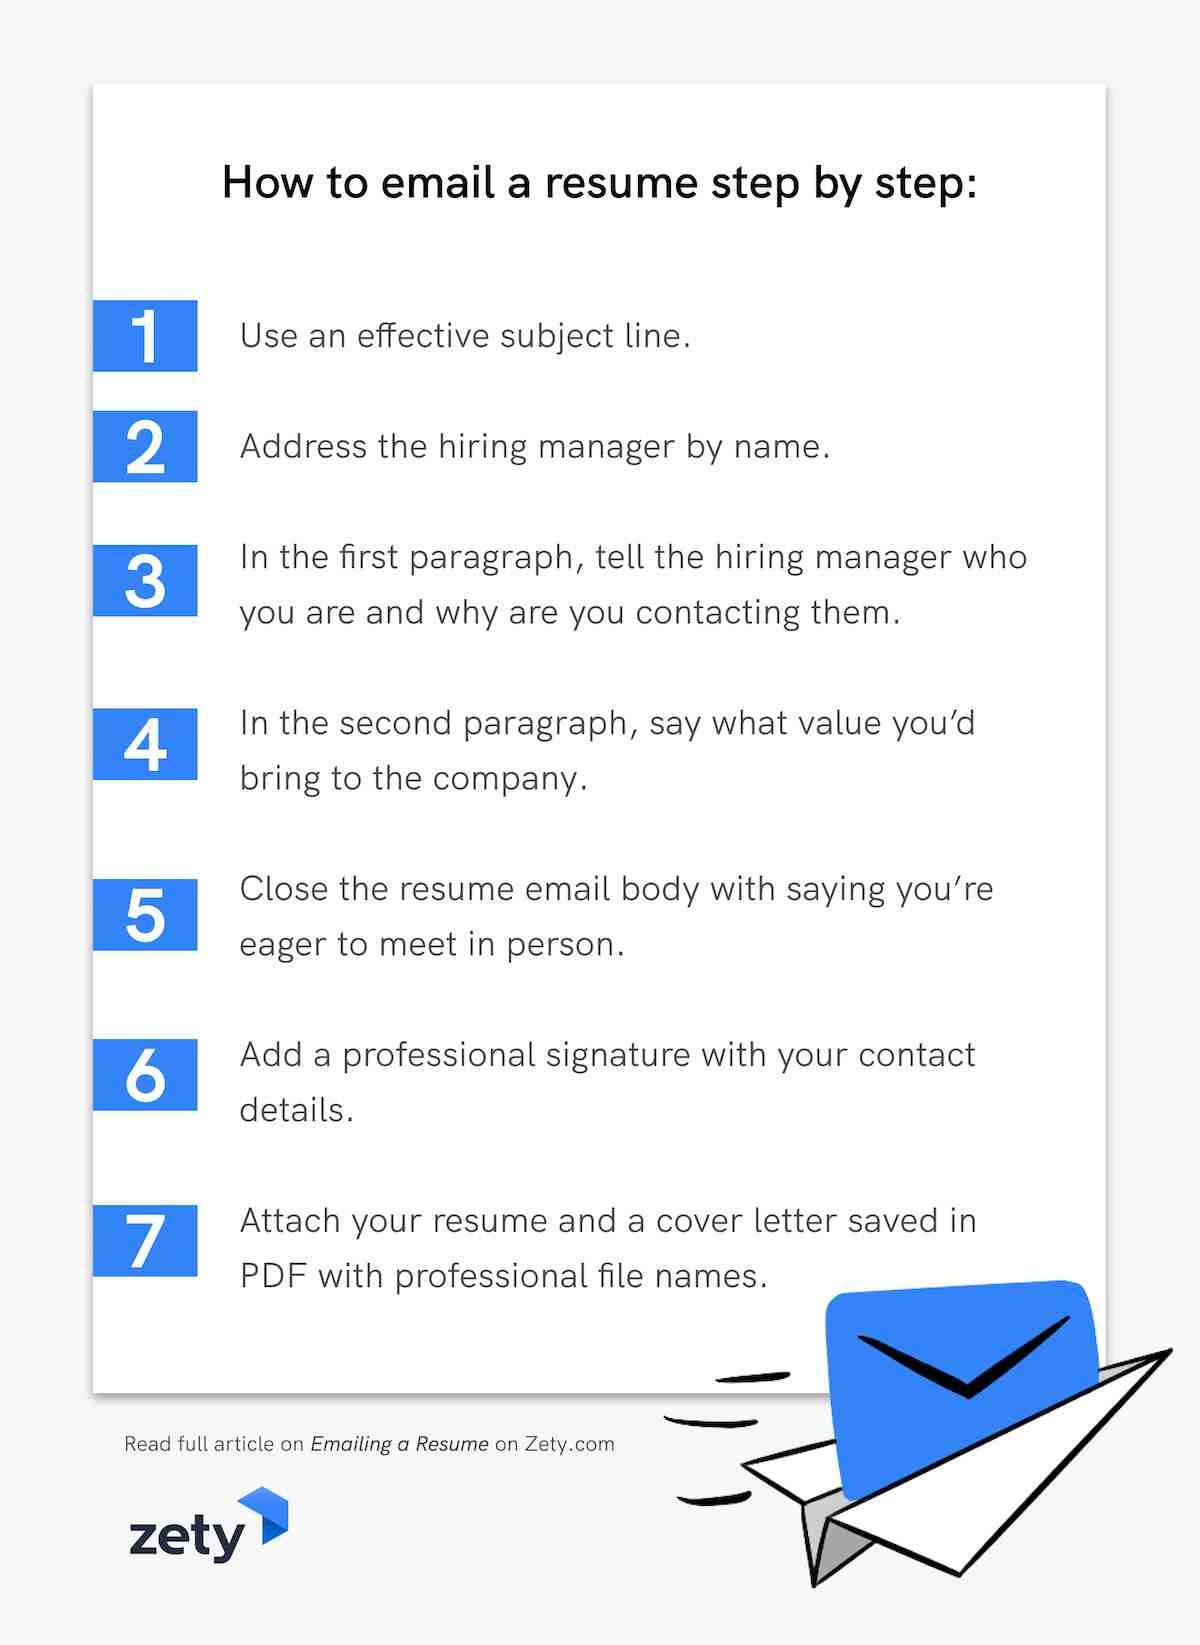 emailing resume job application email samples follow up phone call to step by entry level Resume Resume Follow Up Phone Call